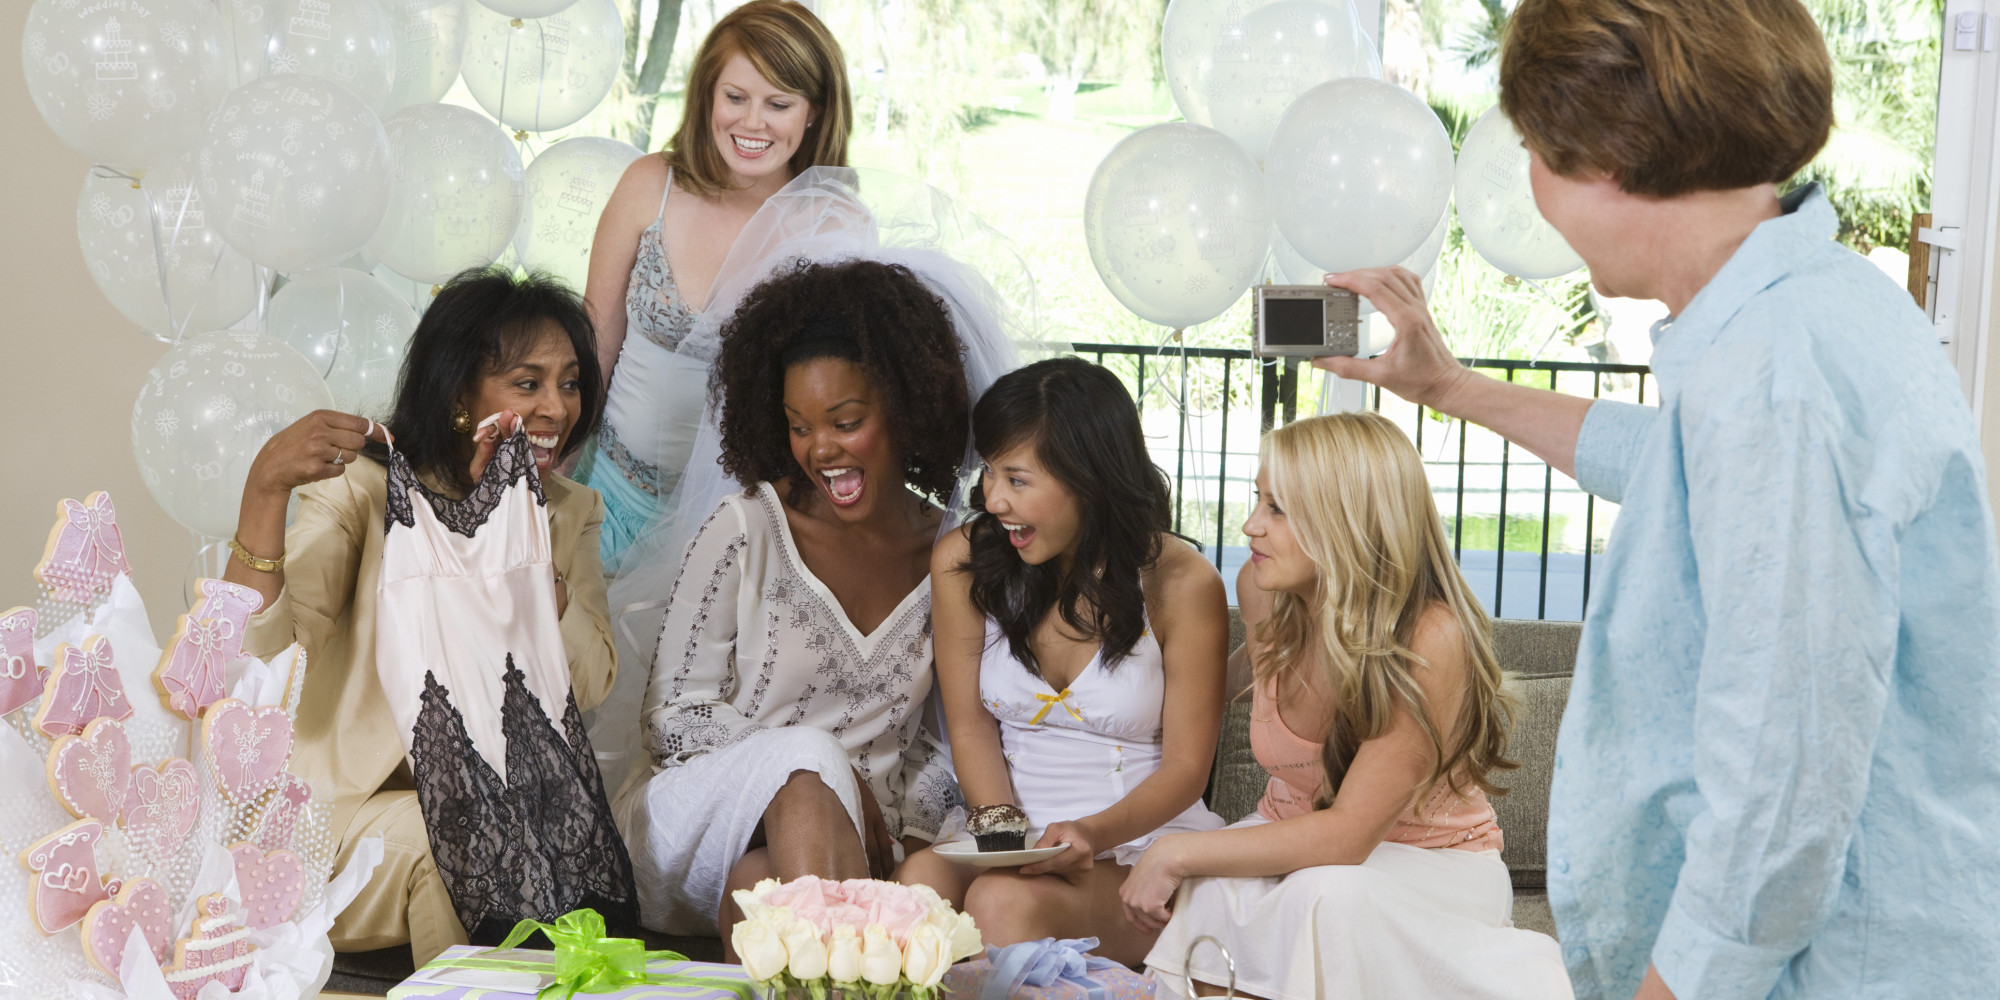 Hilarious Elopement Mor Who Should Be Invited To A Bridal Huffpost Bridal Shower Etiquette Groom Bridal Shower Etiquette bridal shower Bridal Shower Etiquette